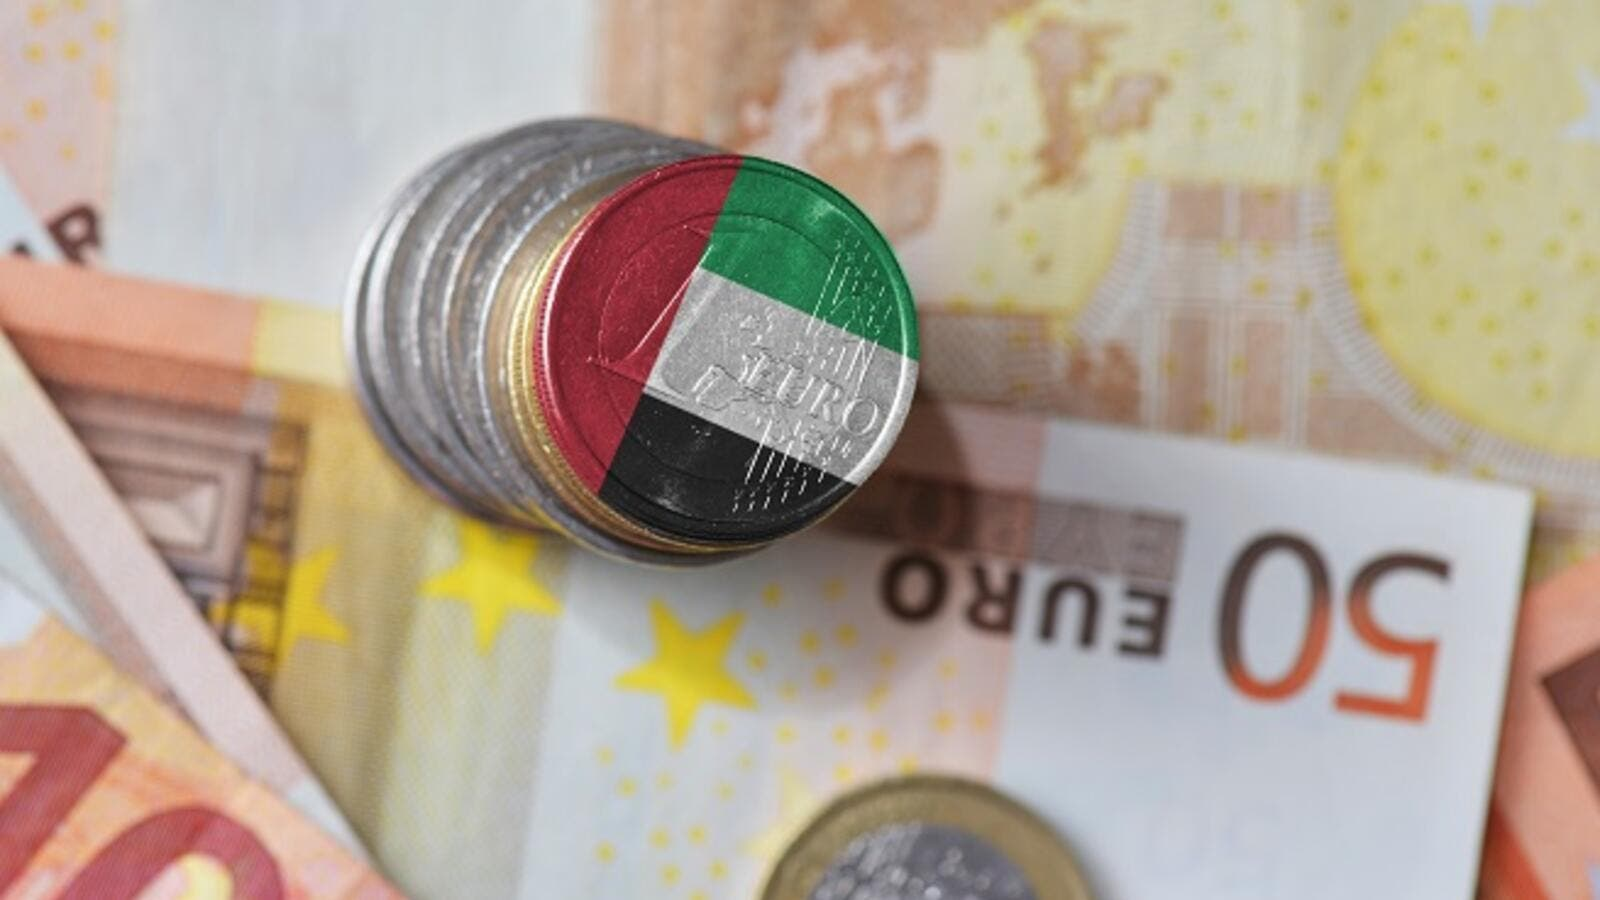 European Union is the largest trading partner of the GCC. (Shutterstock)